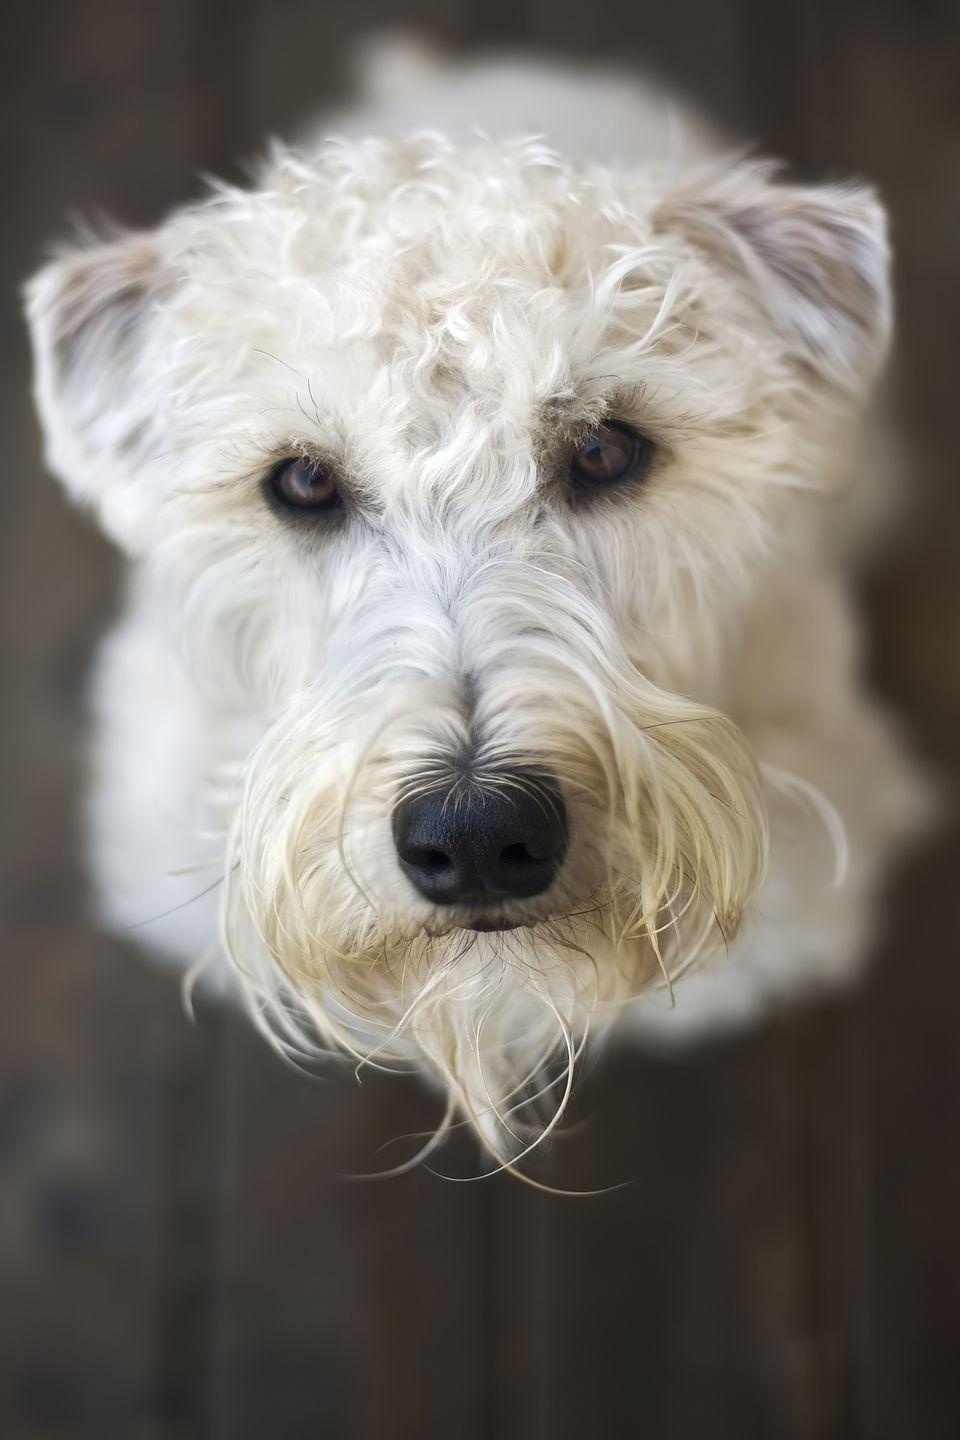 """<p>Adorable Wheaten terriers hardly need an introduction. It's all in the name: These hypoallergenic dogs grow soft coats the color of, well, wheat. The incredibly friendly <a href=""""https://www.goodhousekeeping.com/life/pets/g3414/cutest-mixed-breed-dogs/?slide=1"""" rel=""""nofollow noopener"""" target=""""_blank"""" data-ylk=""""slk:Wheatens"""" class=""""link rapid-noclick-resp"""">Wheatens</a> are so friendly that they give a signature welcome called the """"Wheaten greetin',"""" in which they jump up to meet their owners. Their unique coats don't shed much, but keep them well-groomed to avoid matting. </p>"""